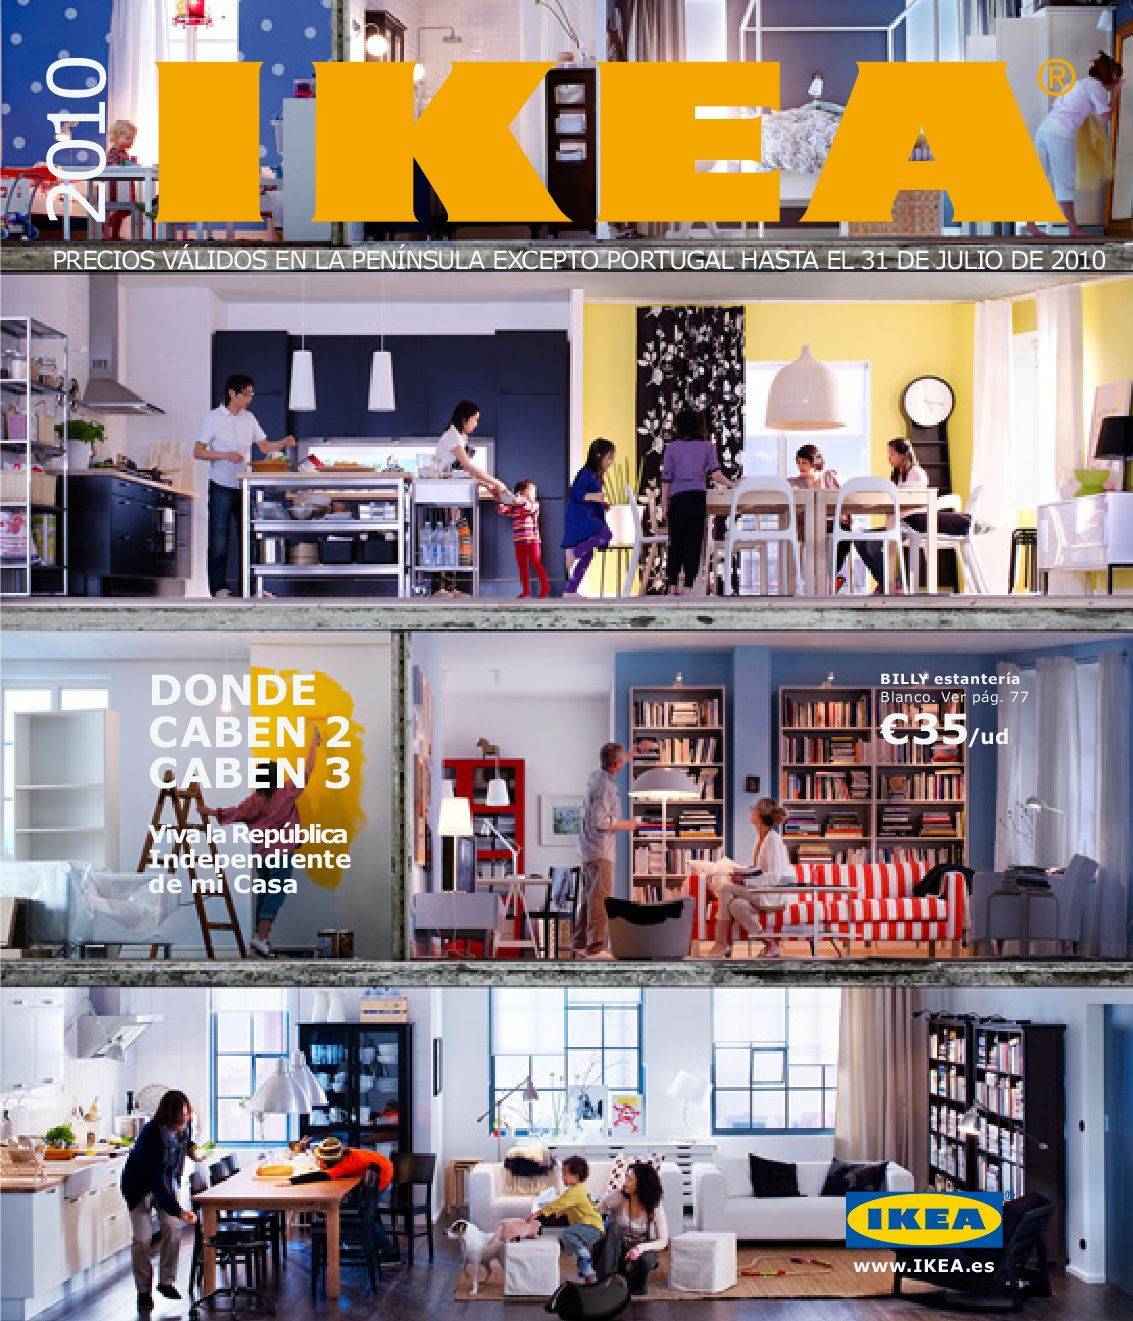 Catálogo IKEA 2010 by miguelator - issuu